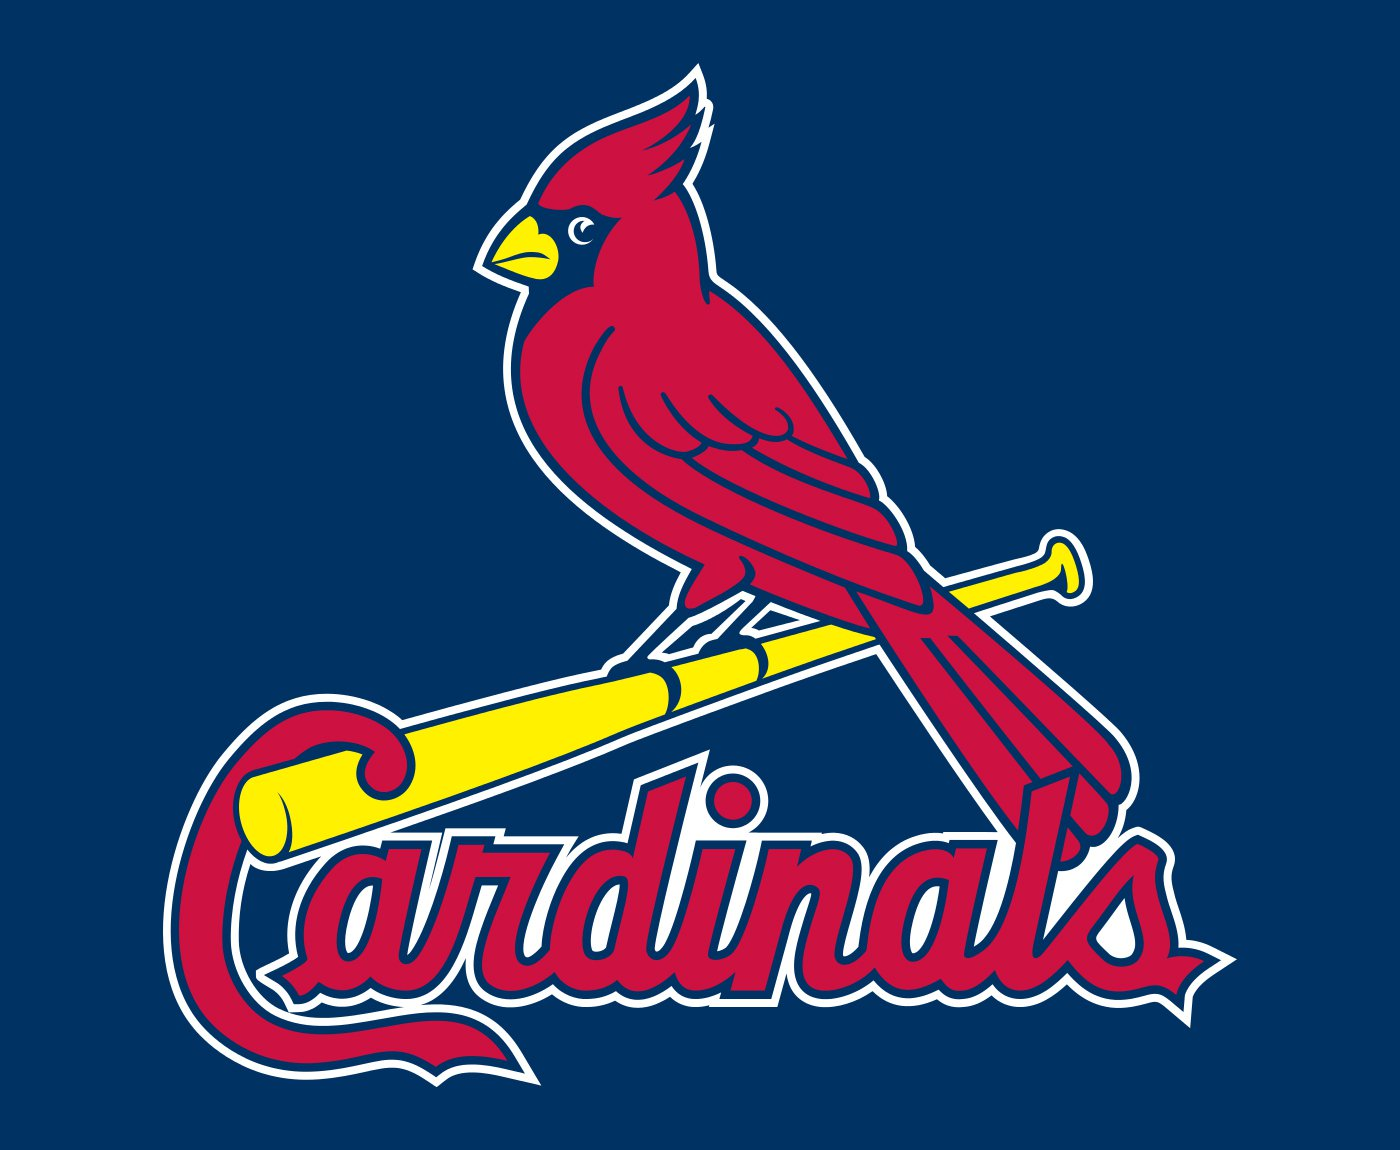 color of the st louis cardinals logo